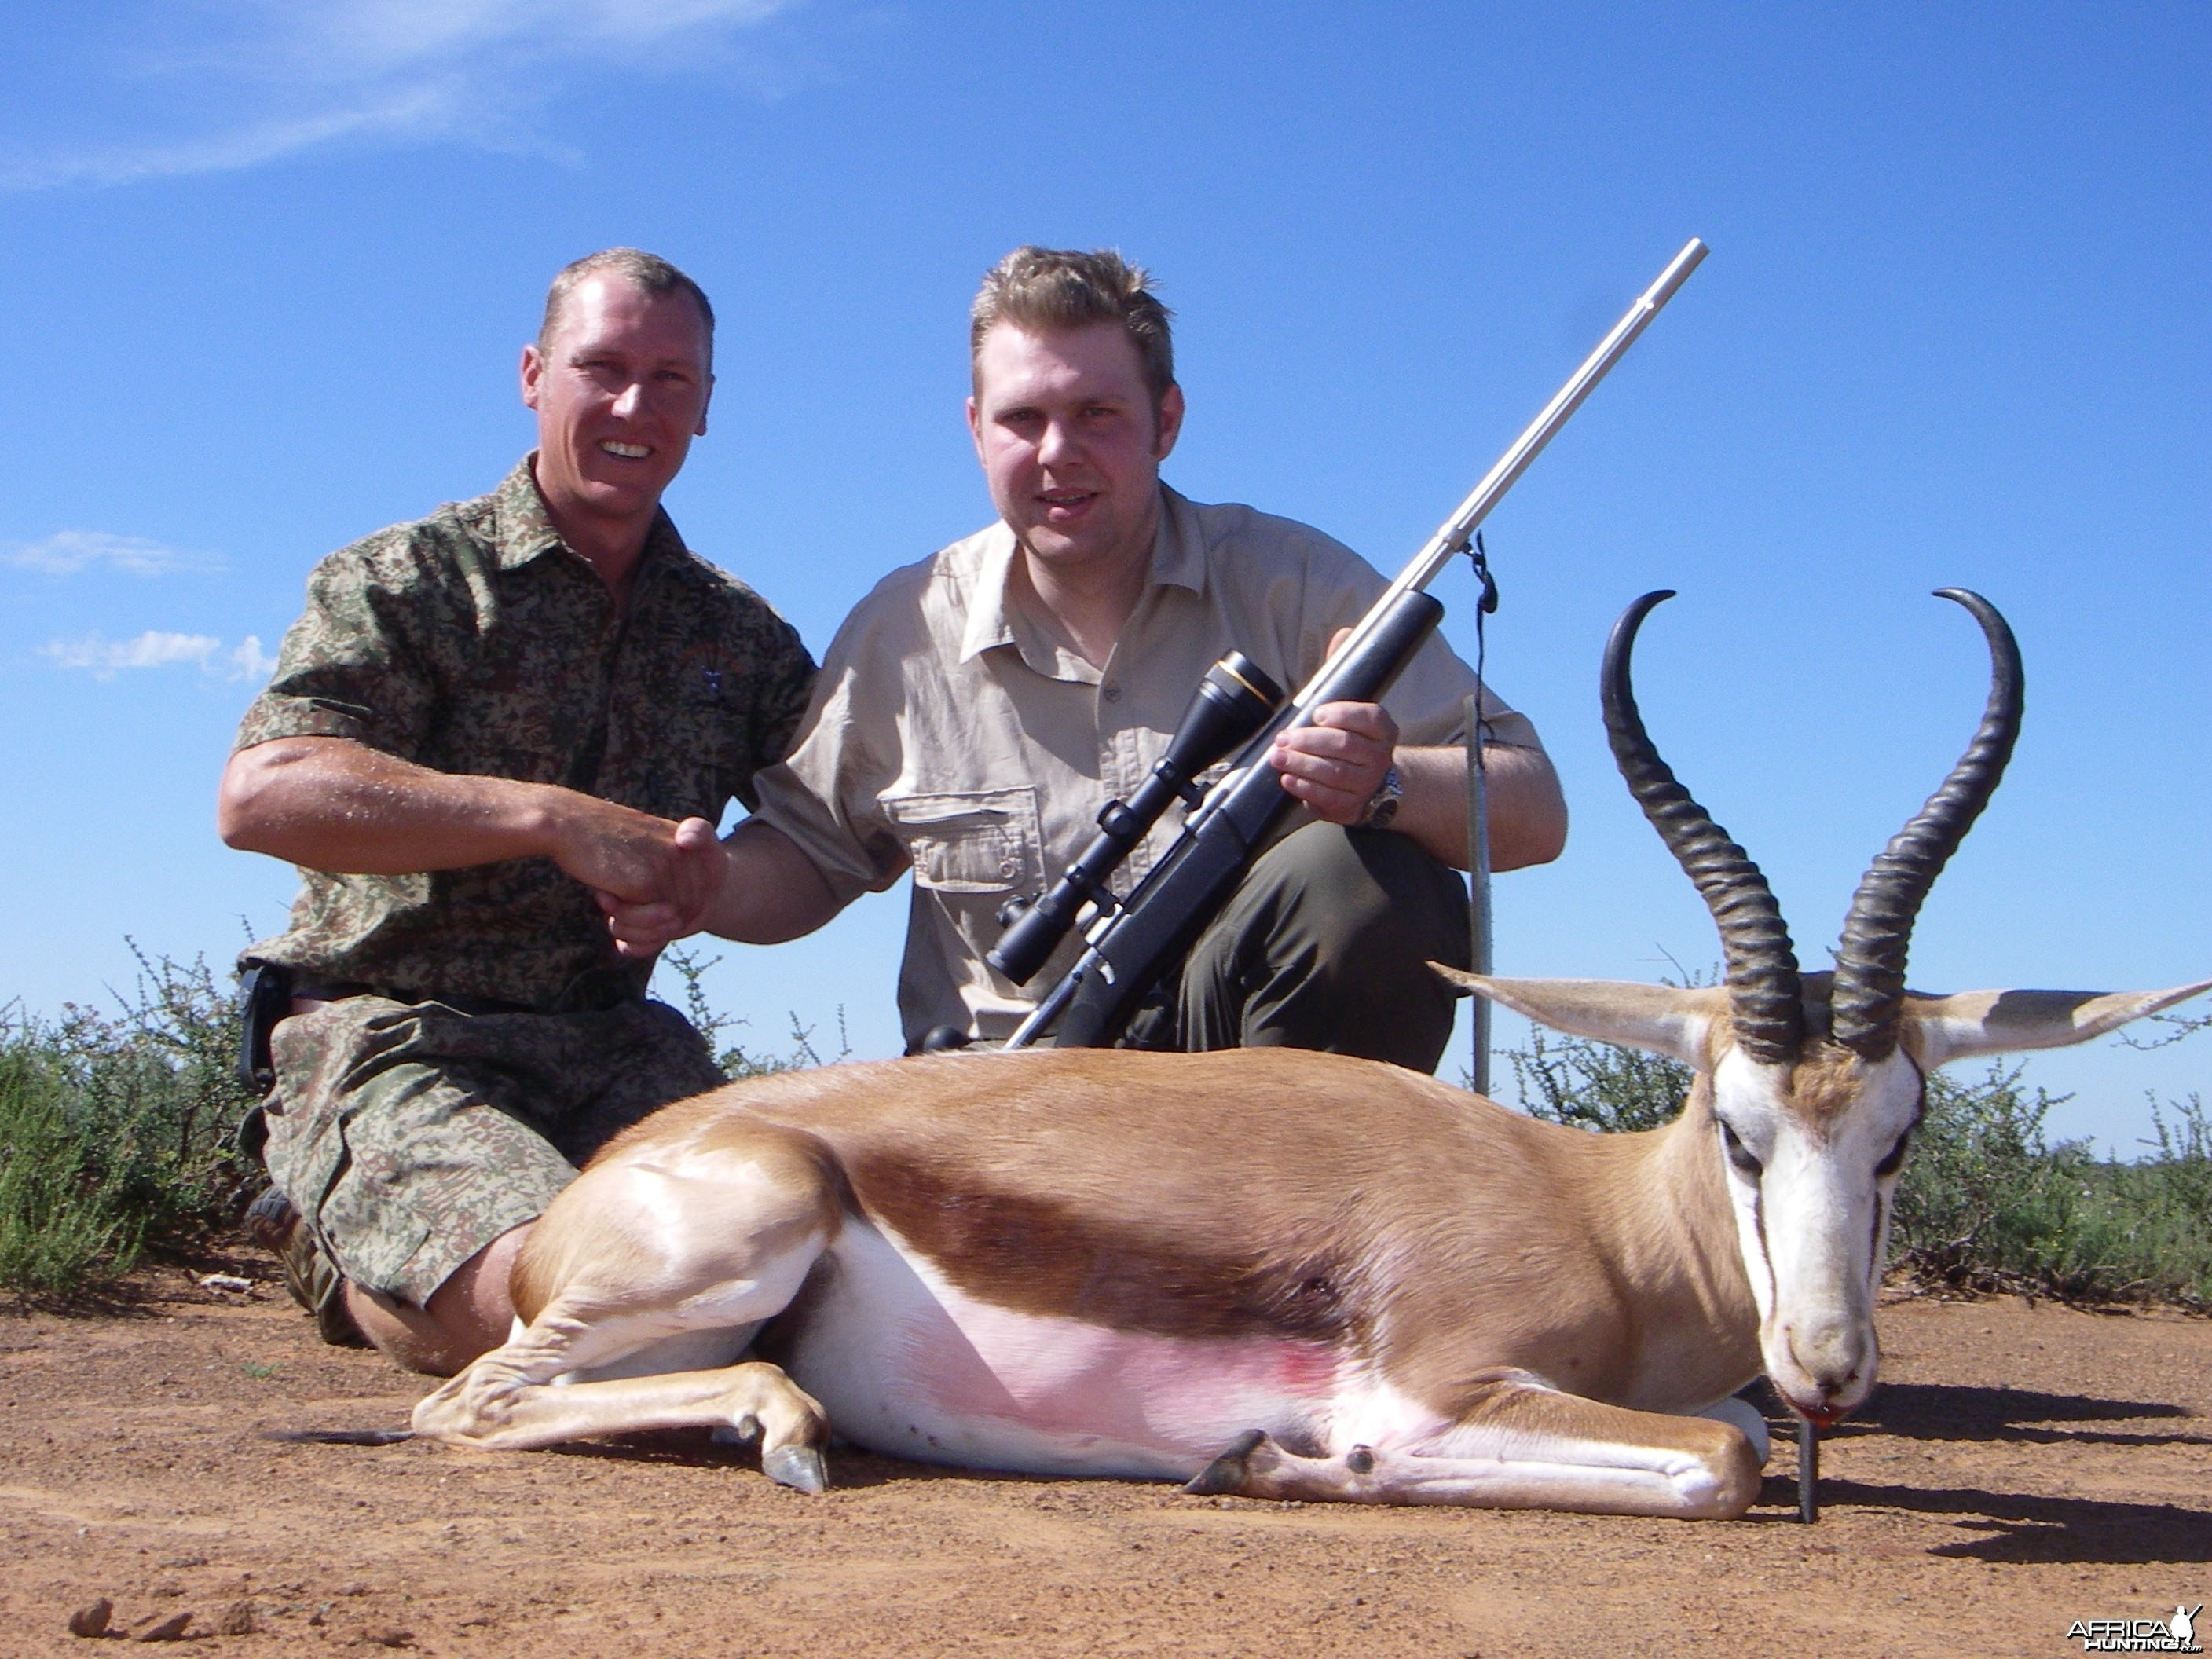 Springbok taken in South Africa